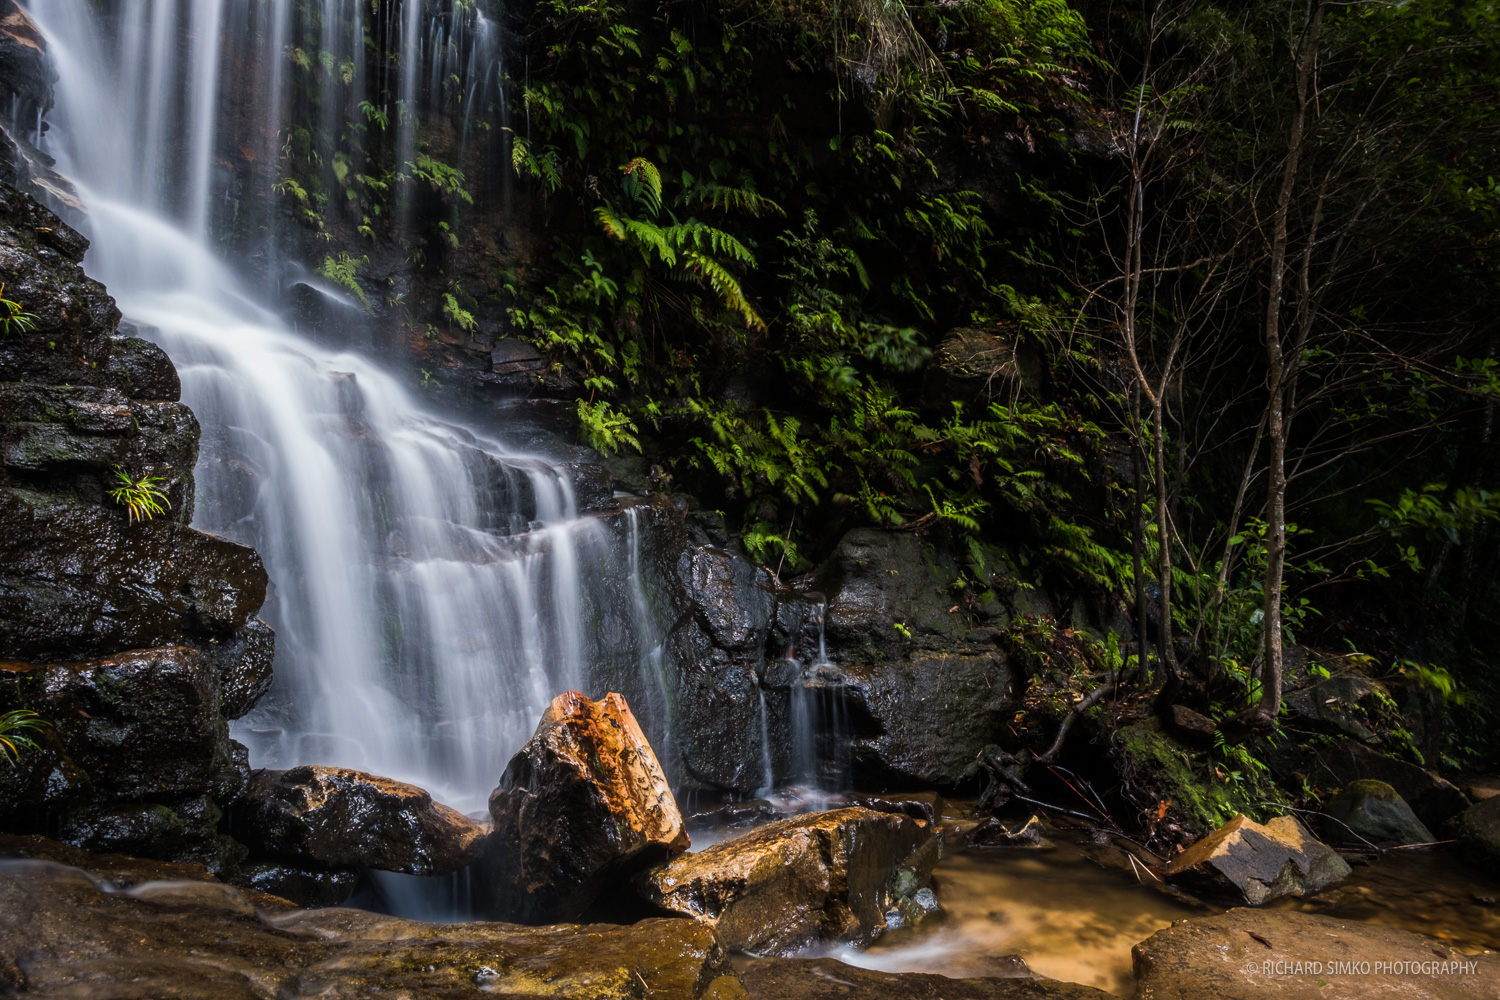 One of the cascades at Wentworth Falls.